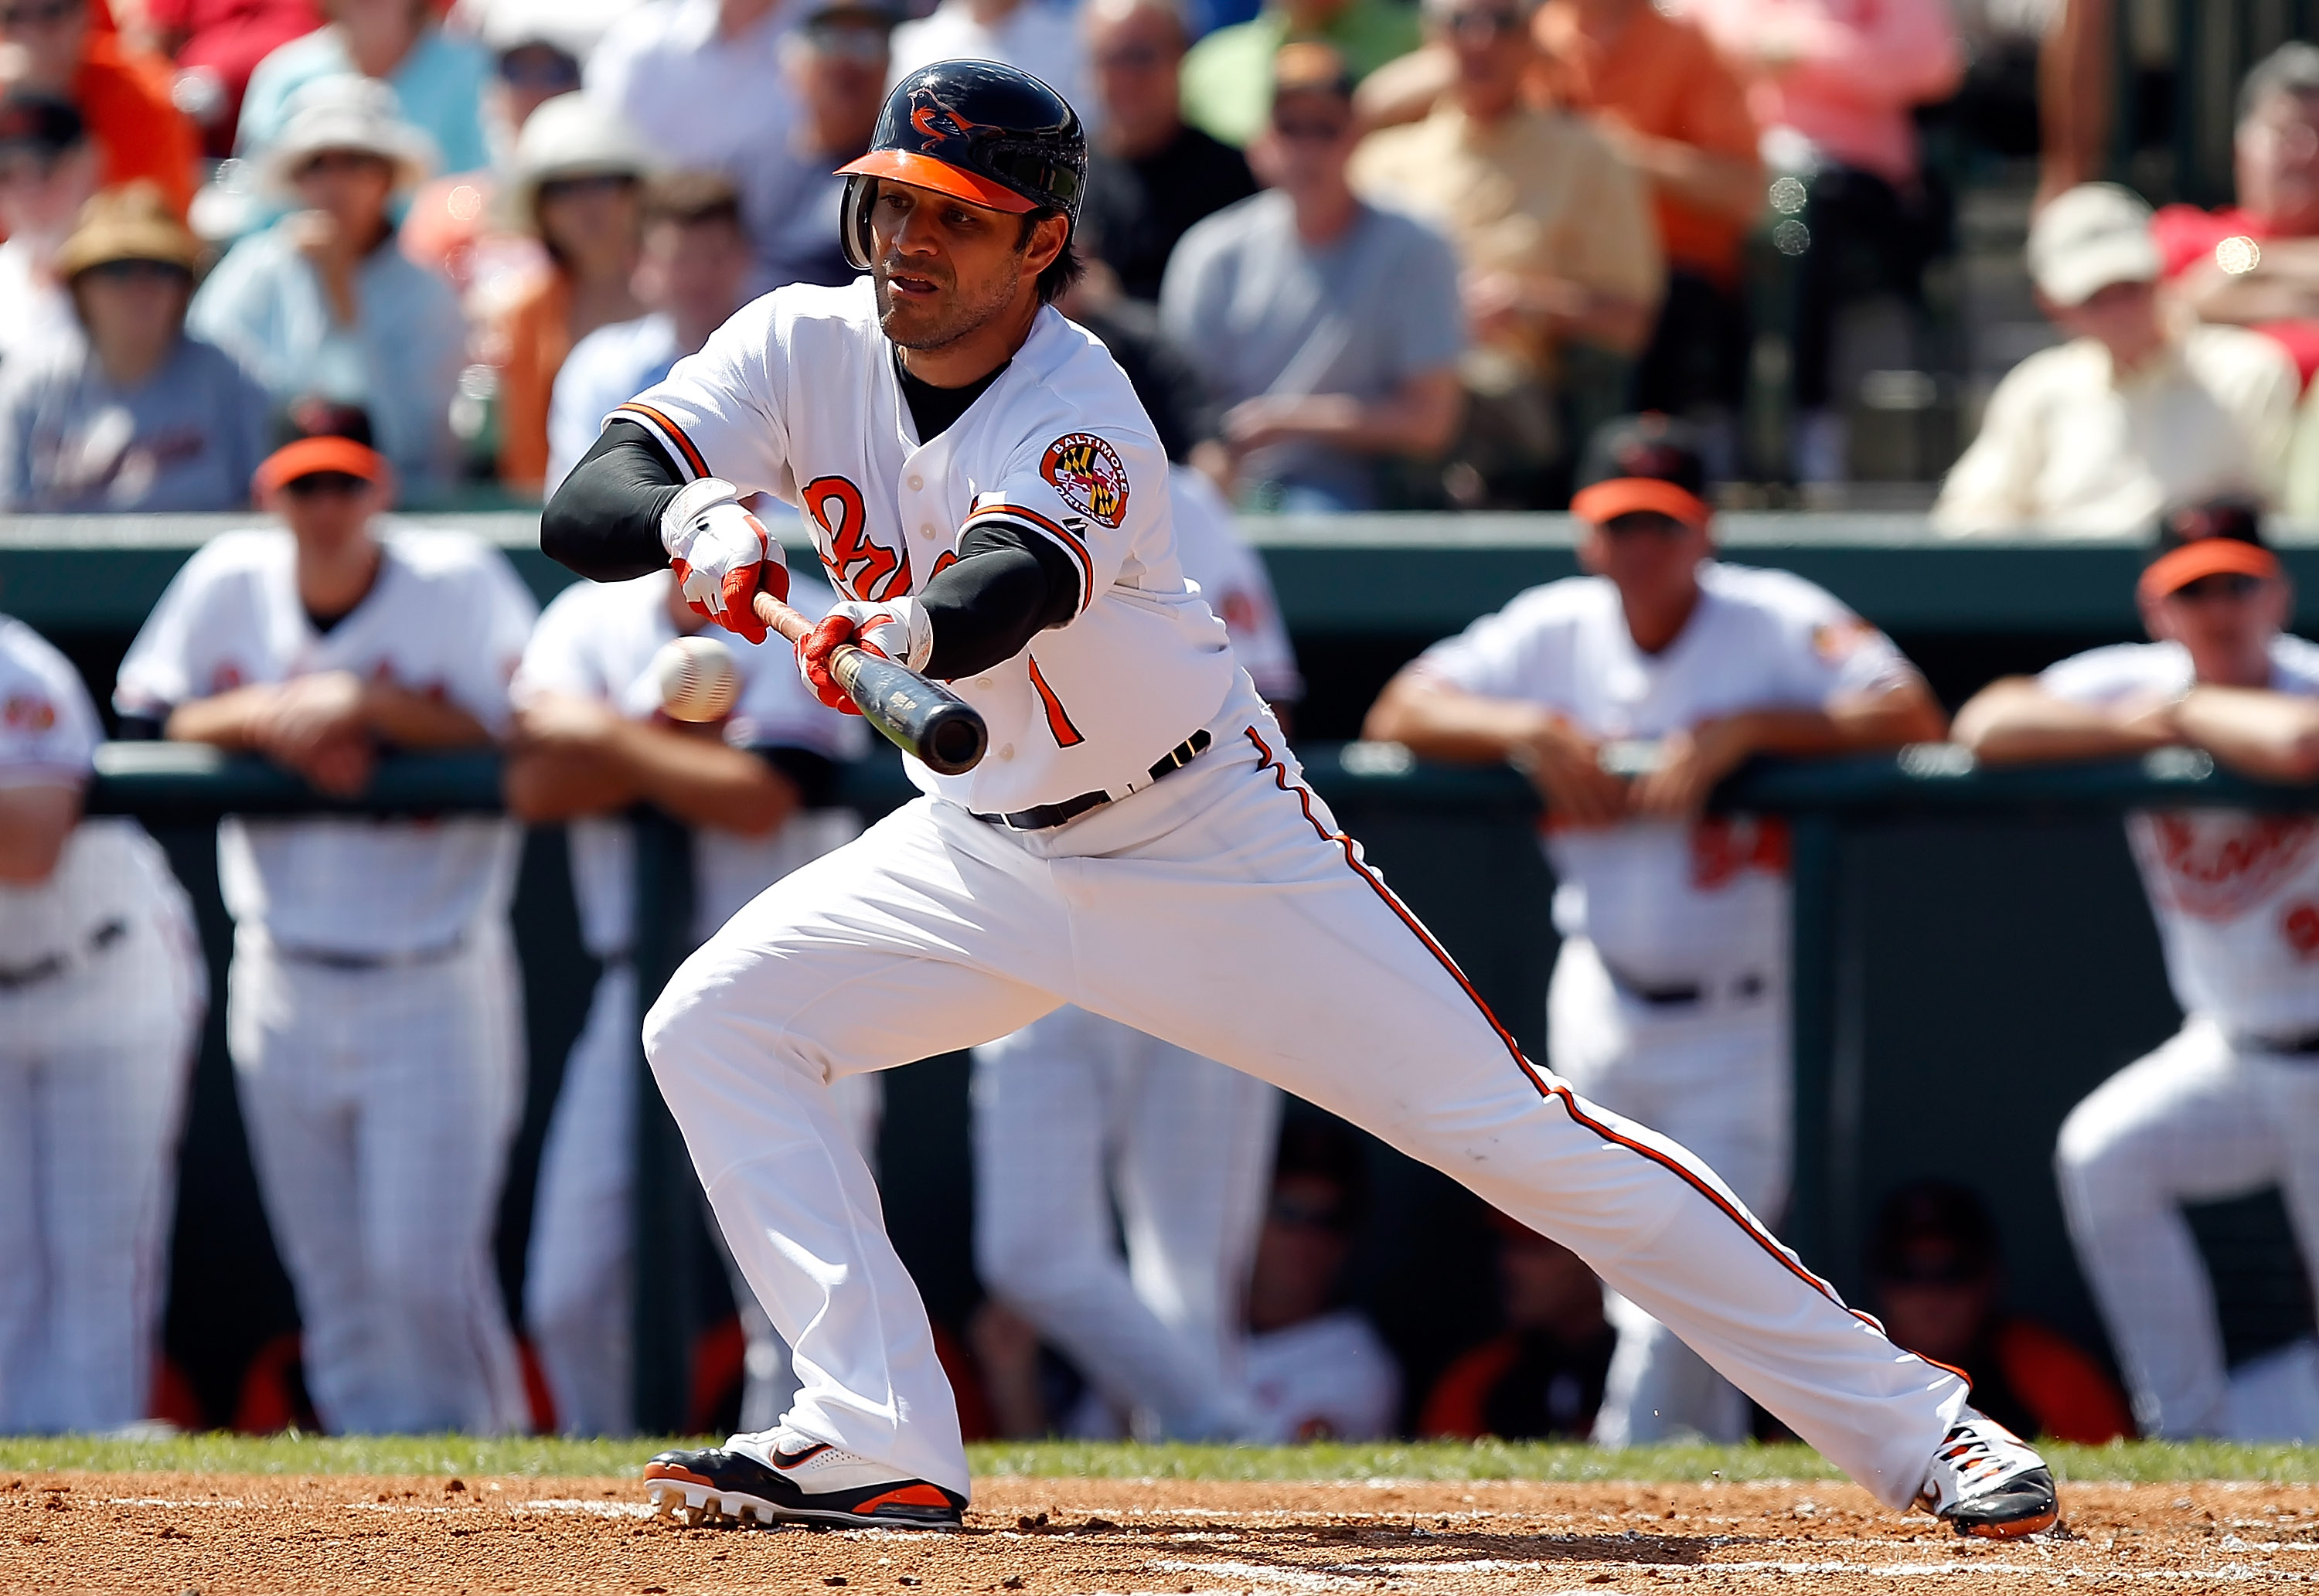 SARASOTA, FL - MARCH 03:  Infielder Brian Roberts #1 of the Baltimore Orioles tries to drag a bunt against the Minnesota Twins during a Grapefruit League Spring Training Game at Ed Smith Stadium on March 3, 2011 in Sarasota, Florida.  (Photo by J. Meric/G